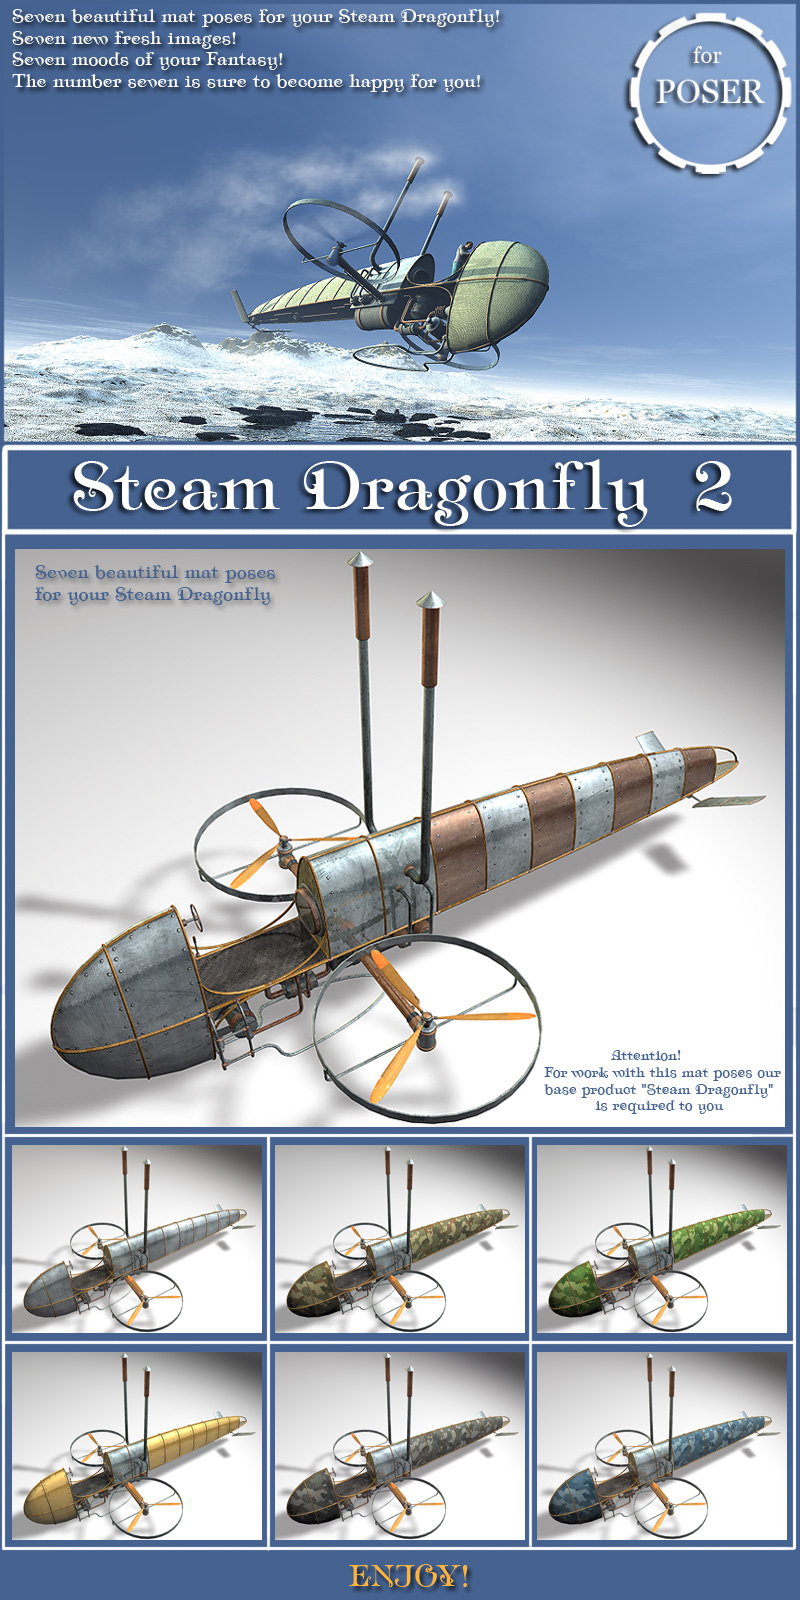 Steam Dragonfly 2